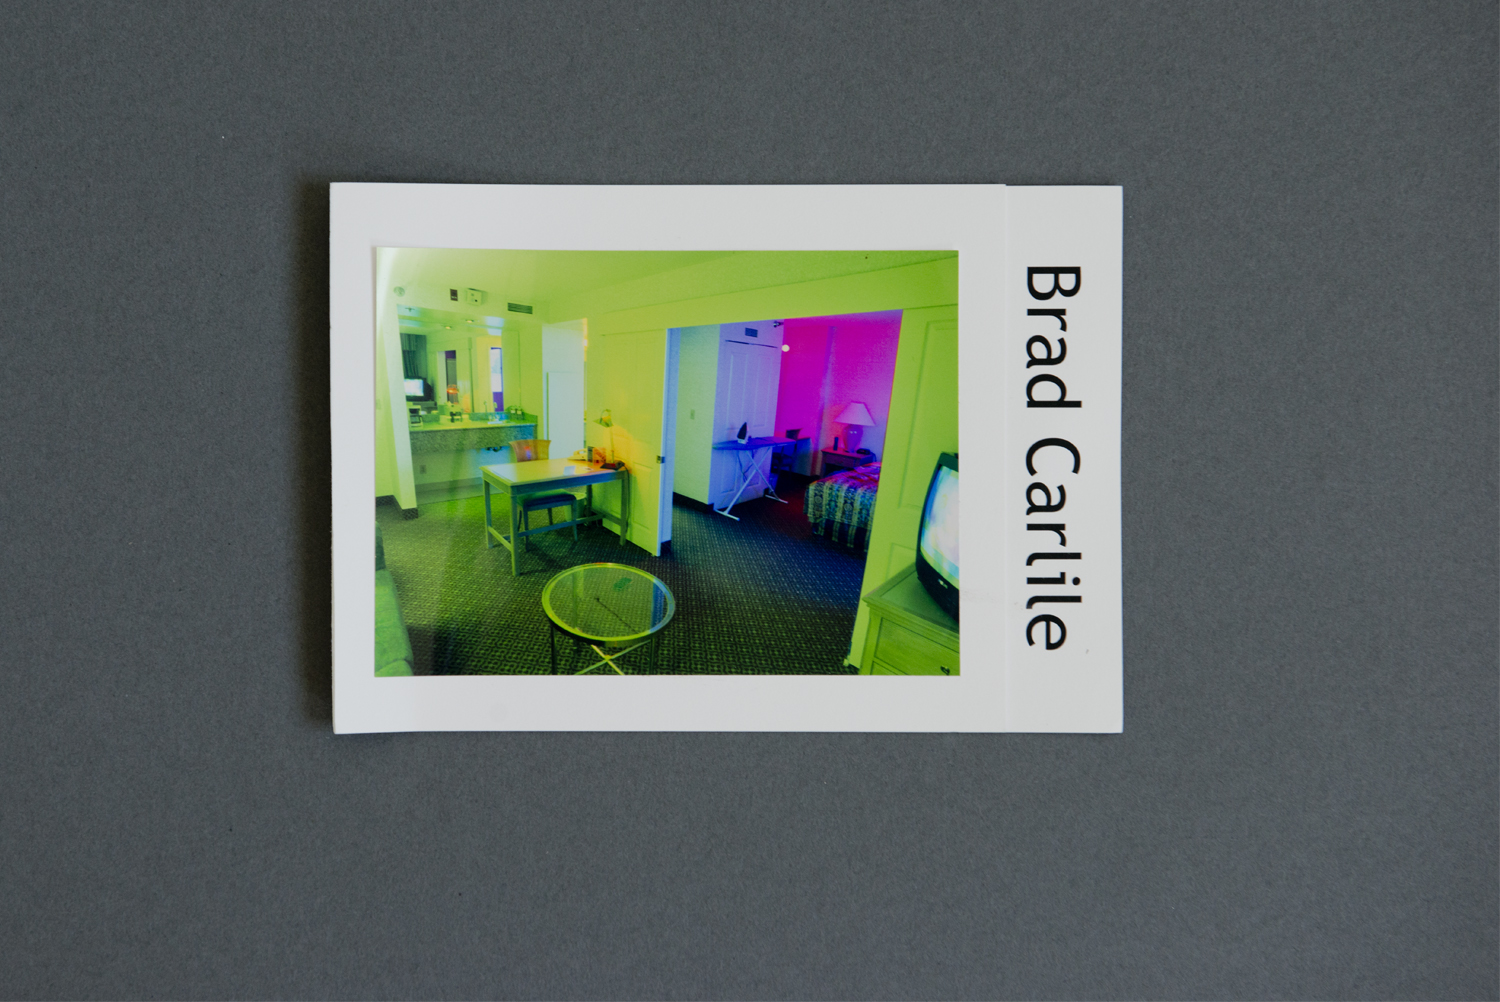 Graphically striking and neon-colored, Brad Carlile's promo card leapt out from our submission pile. The bright colors and distorted perspective of the front photograph are balanced by the bold, sans-serif font of his vertically oriented name.